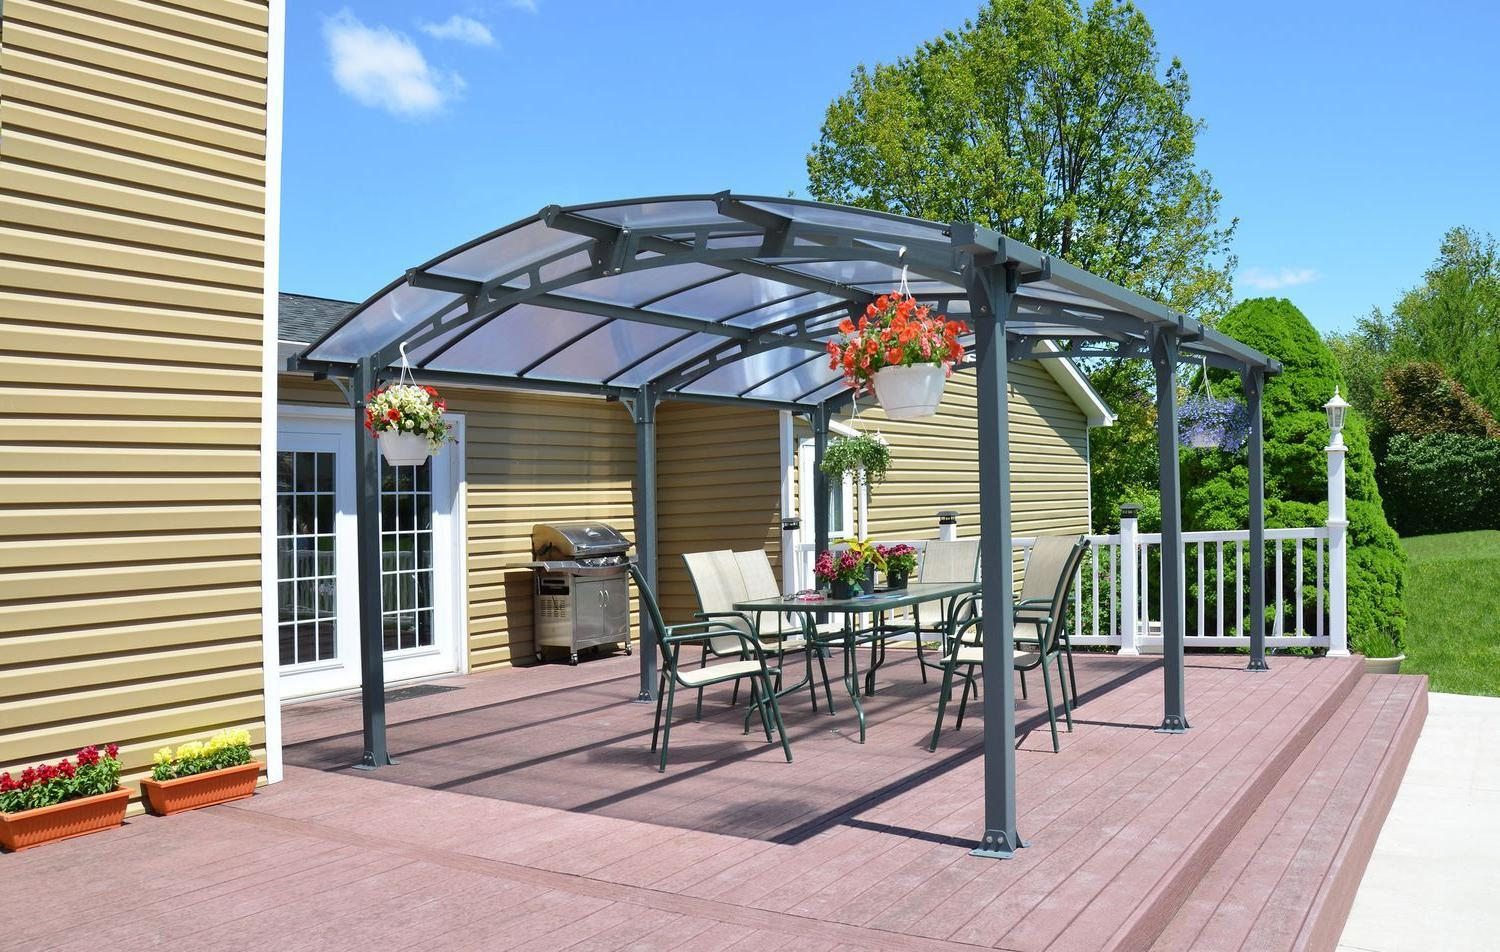 Crystal color polycarbonate roofs